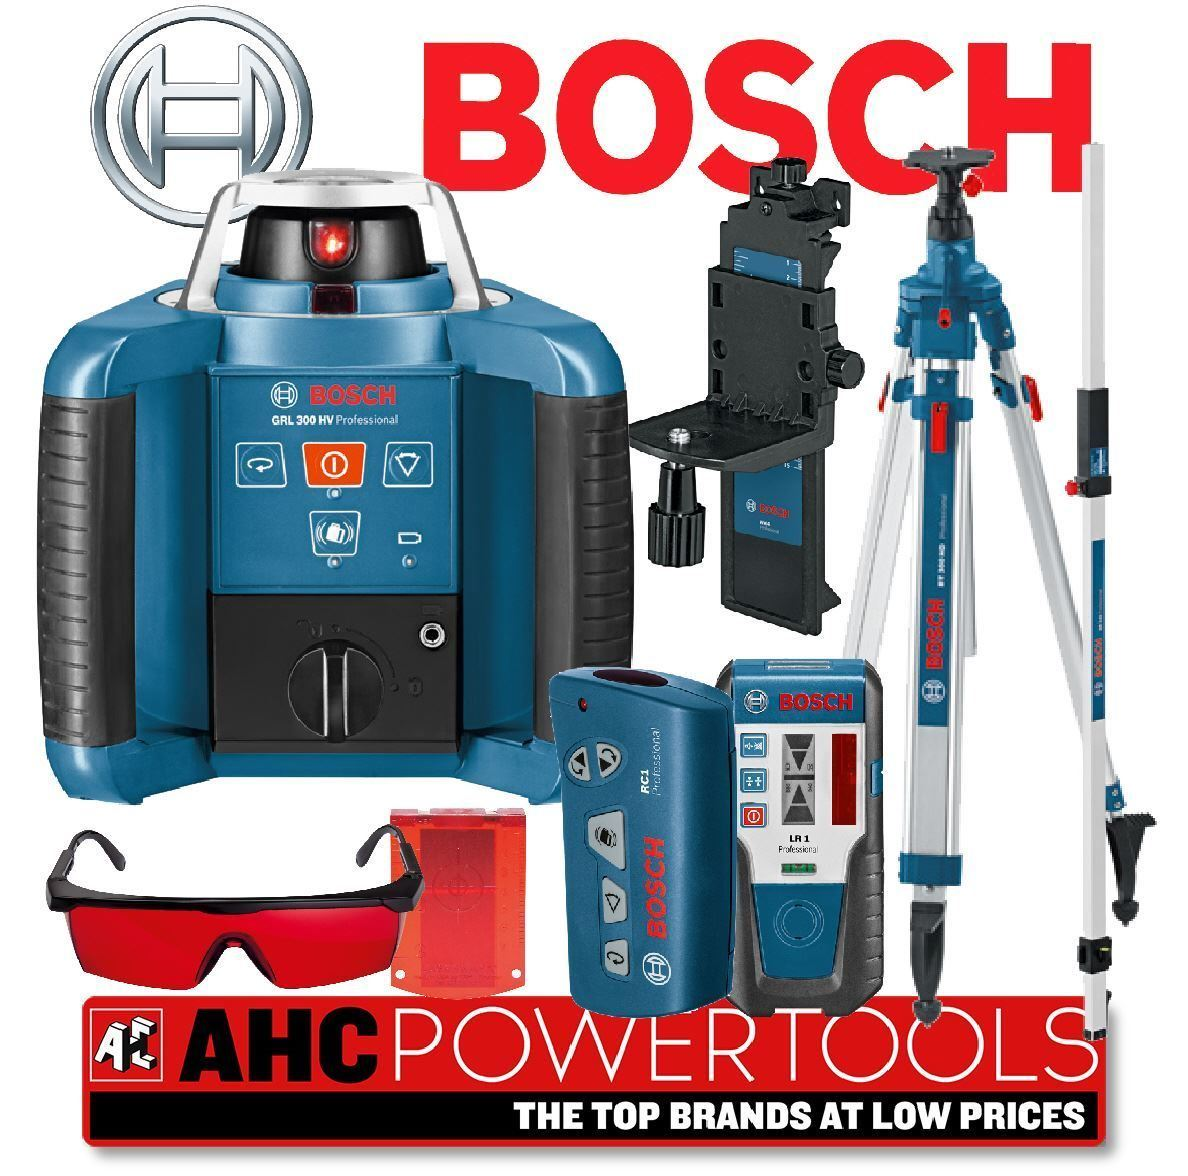 bosch grl 300 hv pro site rotierende laser level set. Black Bedroom Furniture Sets. Home Design Ideas